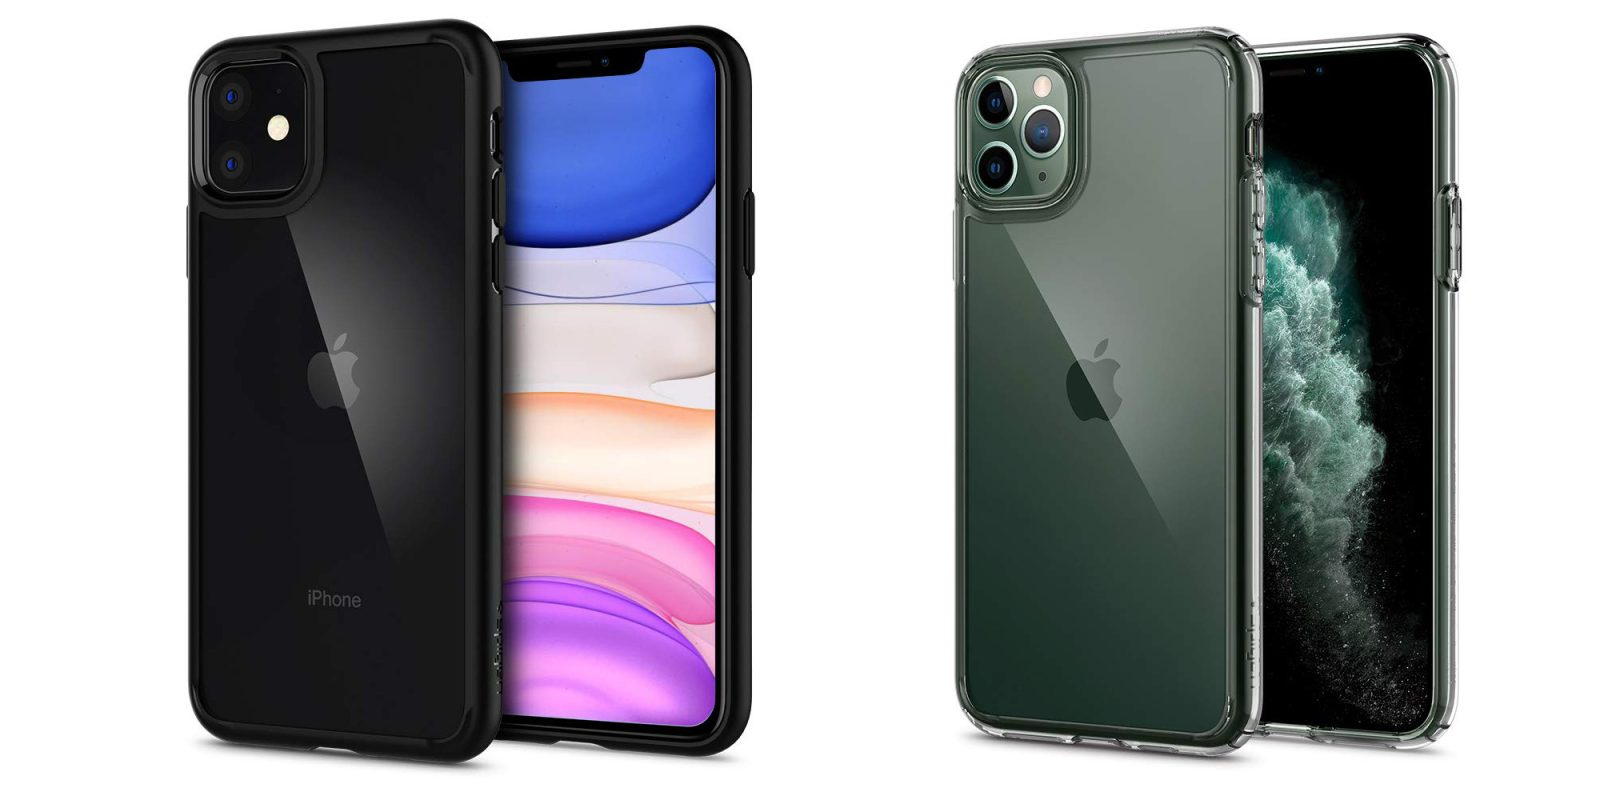 Spigen's iPhone 11/Pro/Max Ultra Hybrid Case is down to $9.50 (Reg. up to $25)